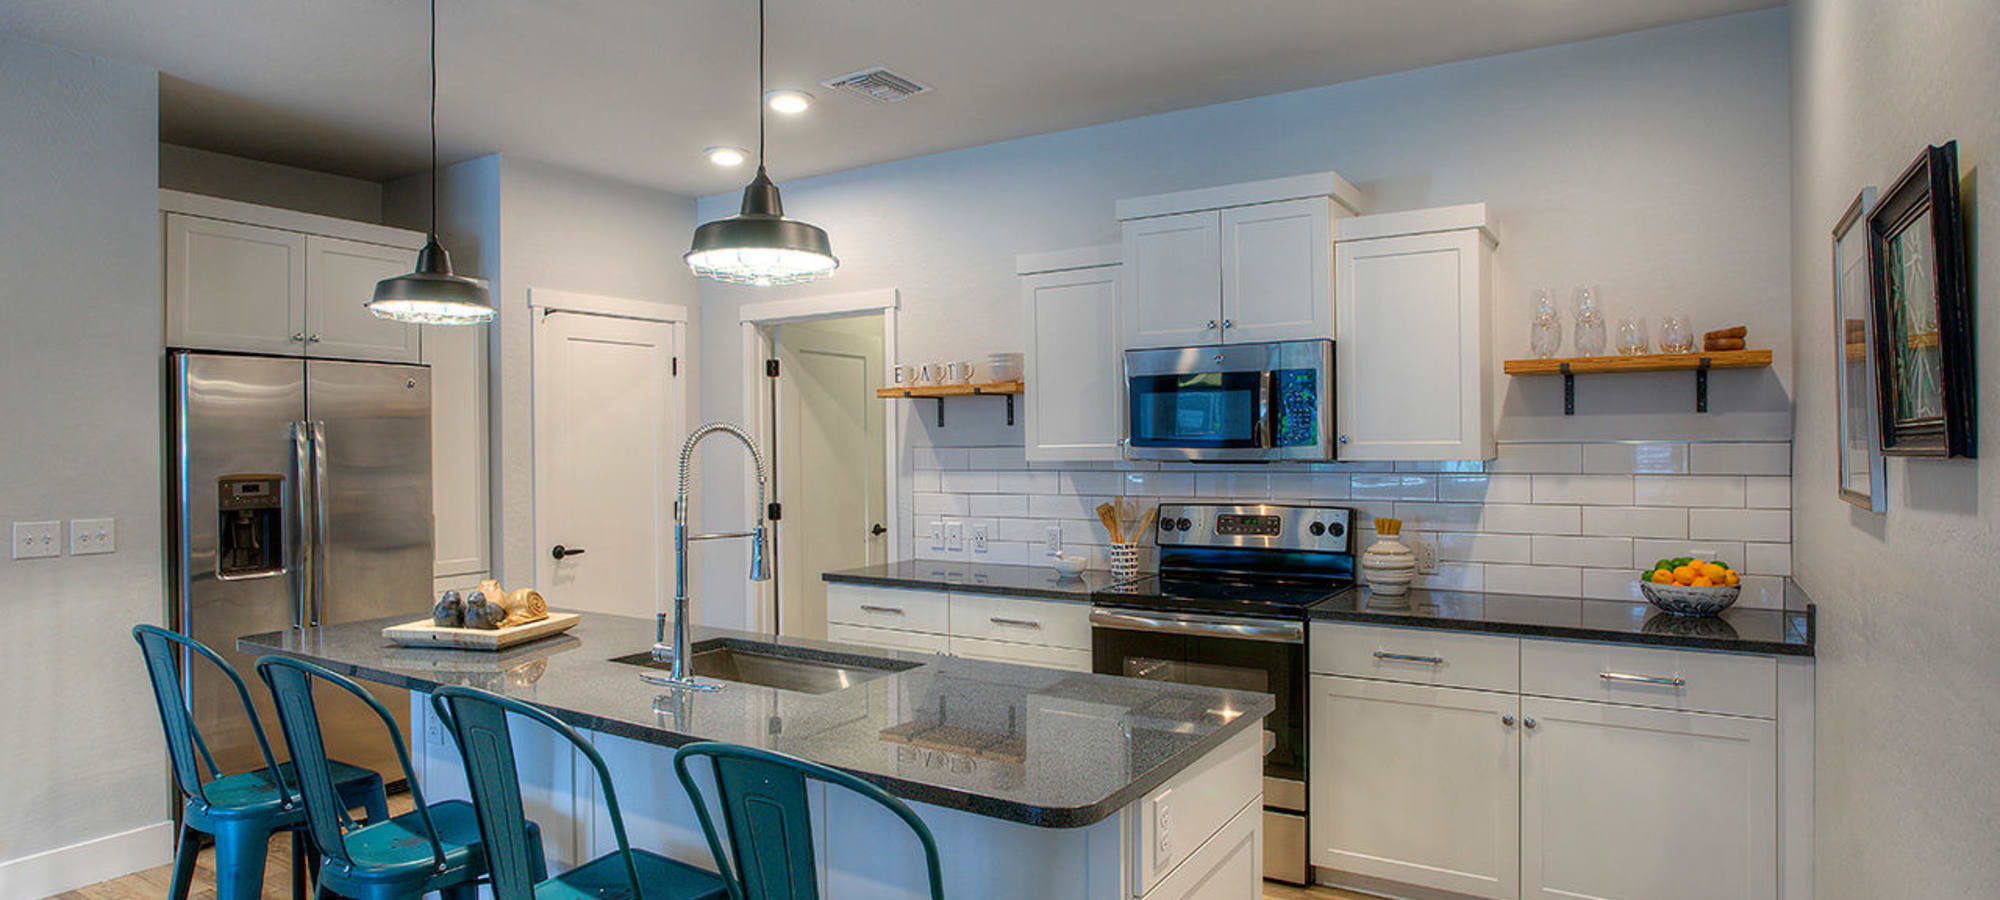 Gourmet kitchen with island, granite countertops, and energy-efficient appliances in model home at District Lofts in Gilbert, Arizona